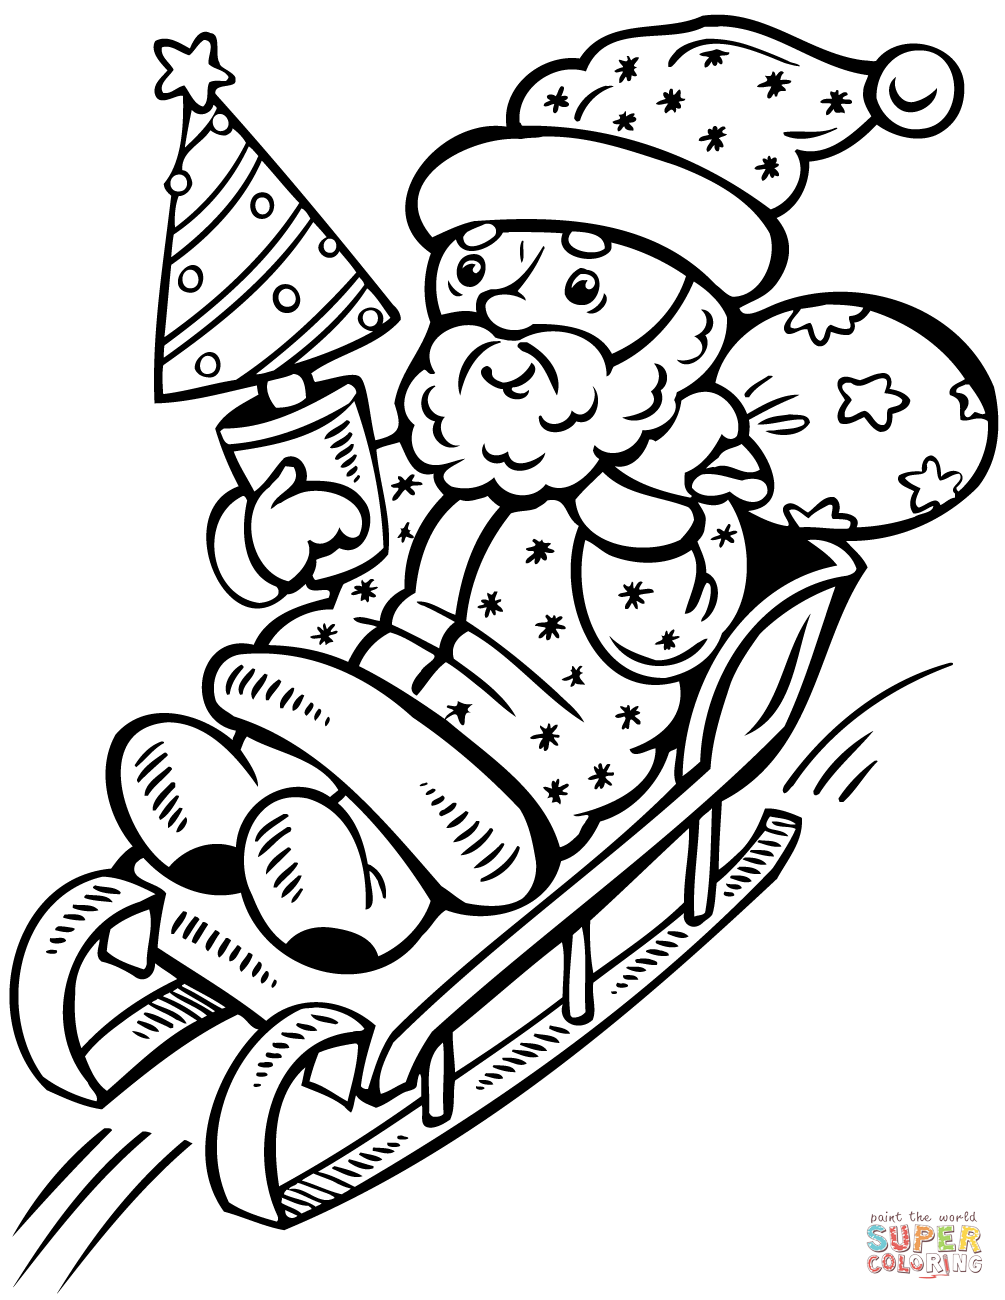 Santa Claus Christmas Tree Coloring Pages With On Sleigh Page Free